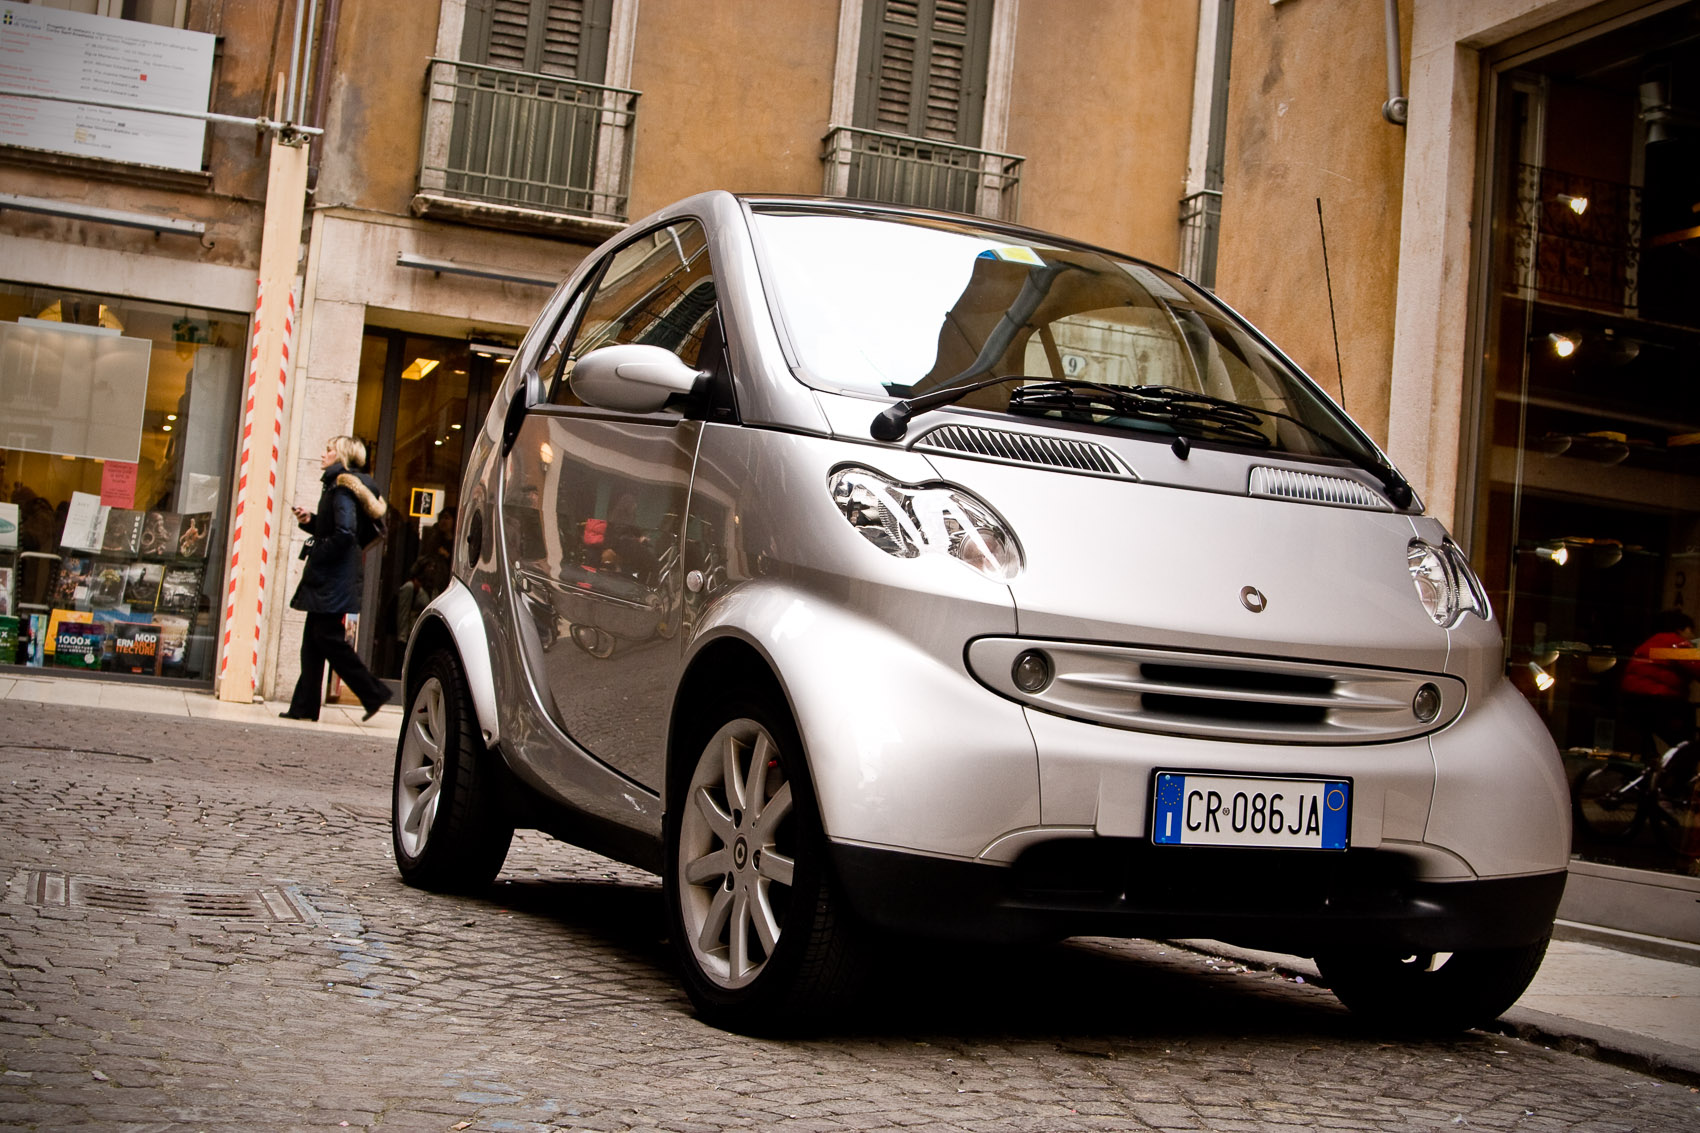 Location Photograph of Smart fourtwo on a Street in Verona, Italy | J. Eldon Zimmerman Photography | Lancaster, PA Commercial Photographer